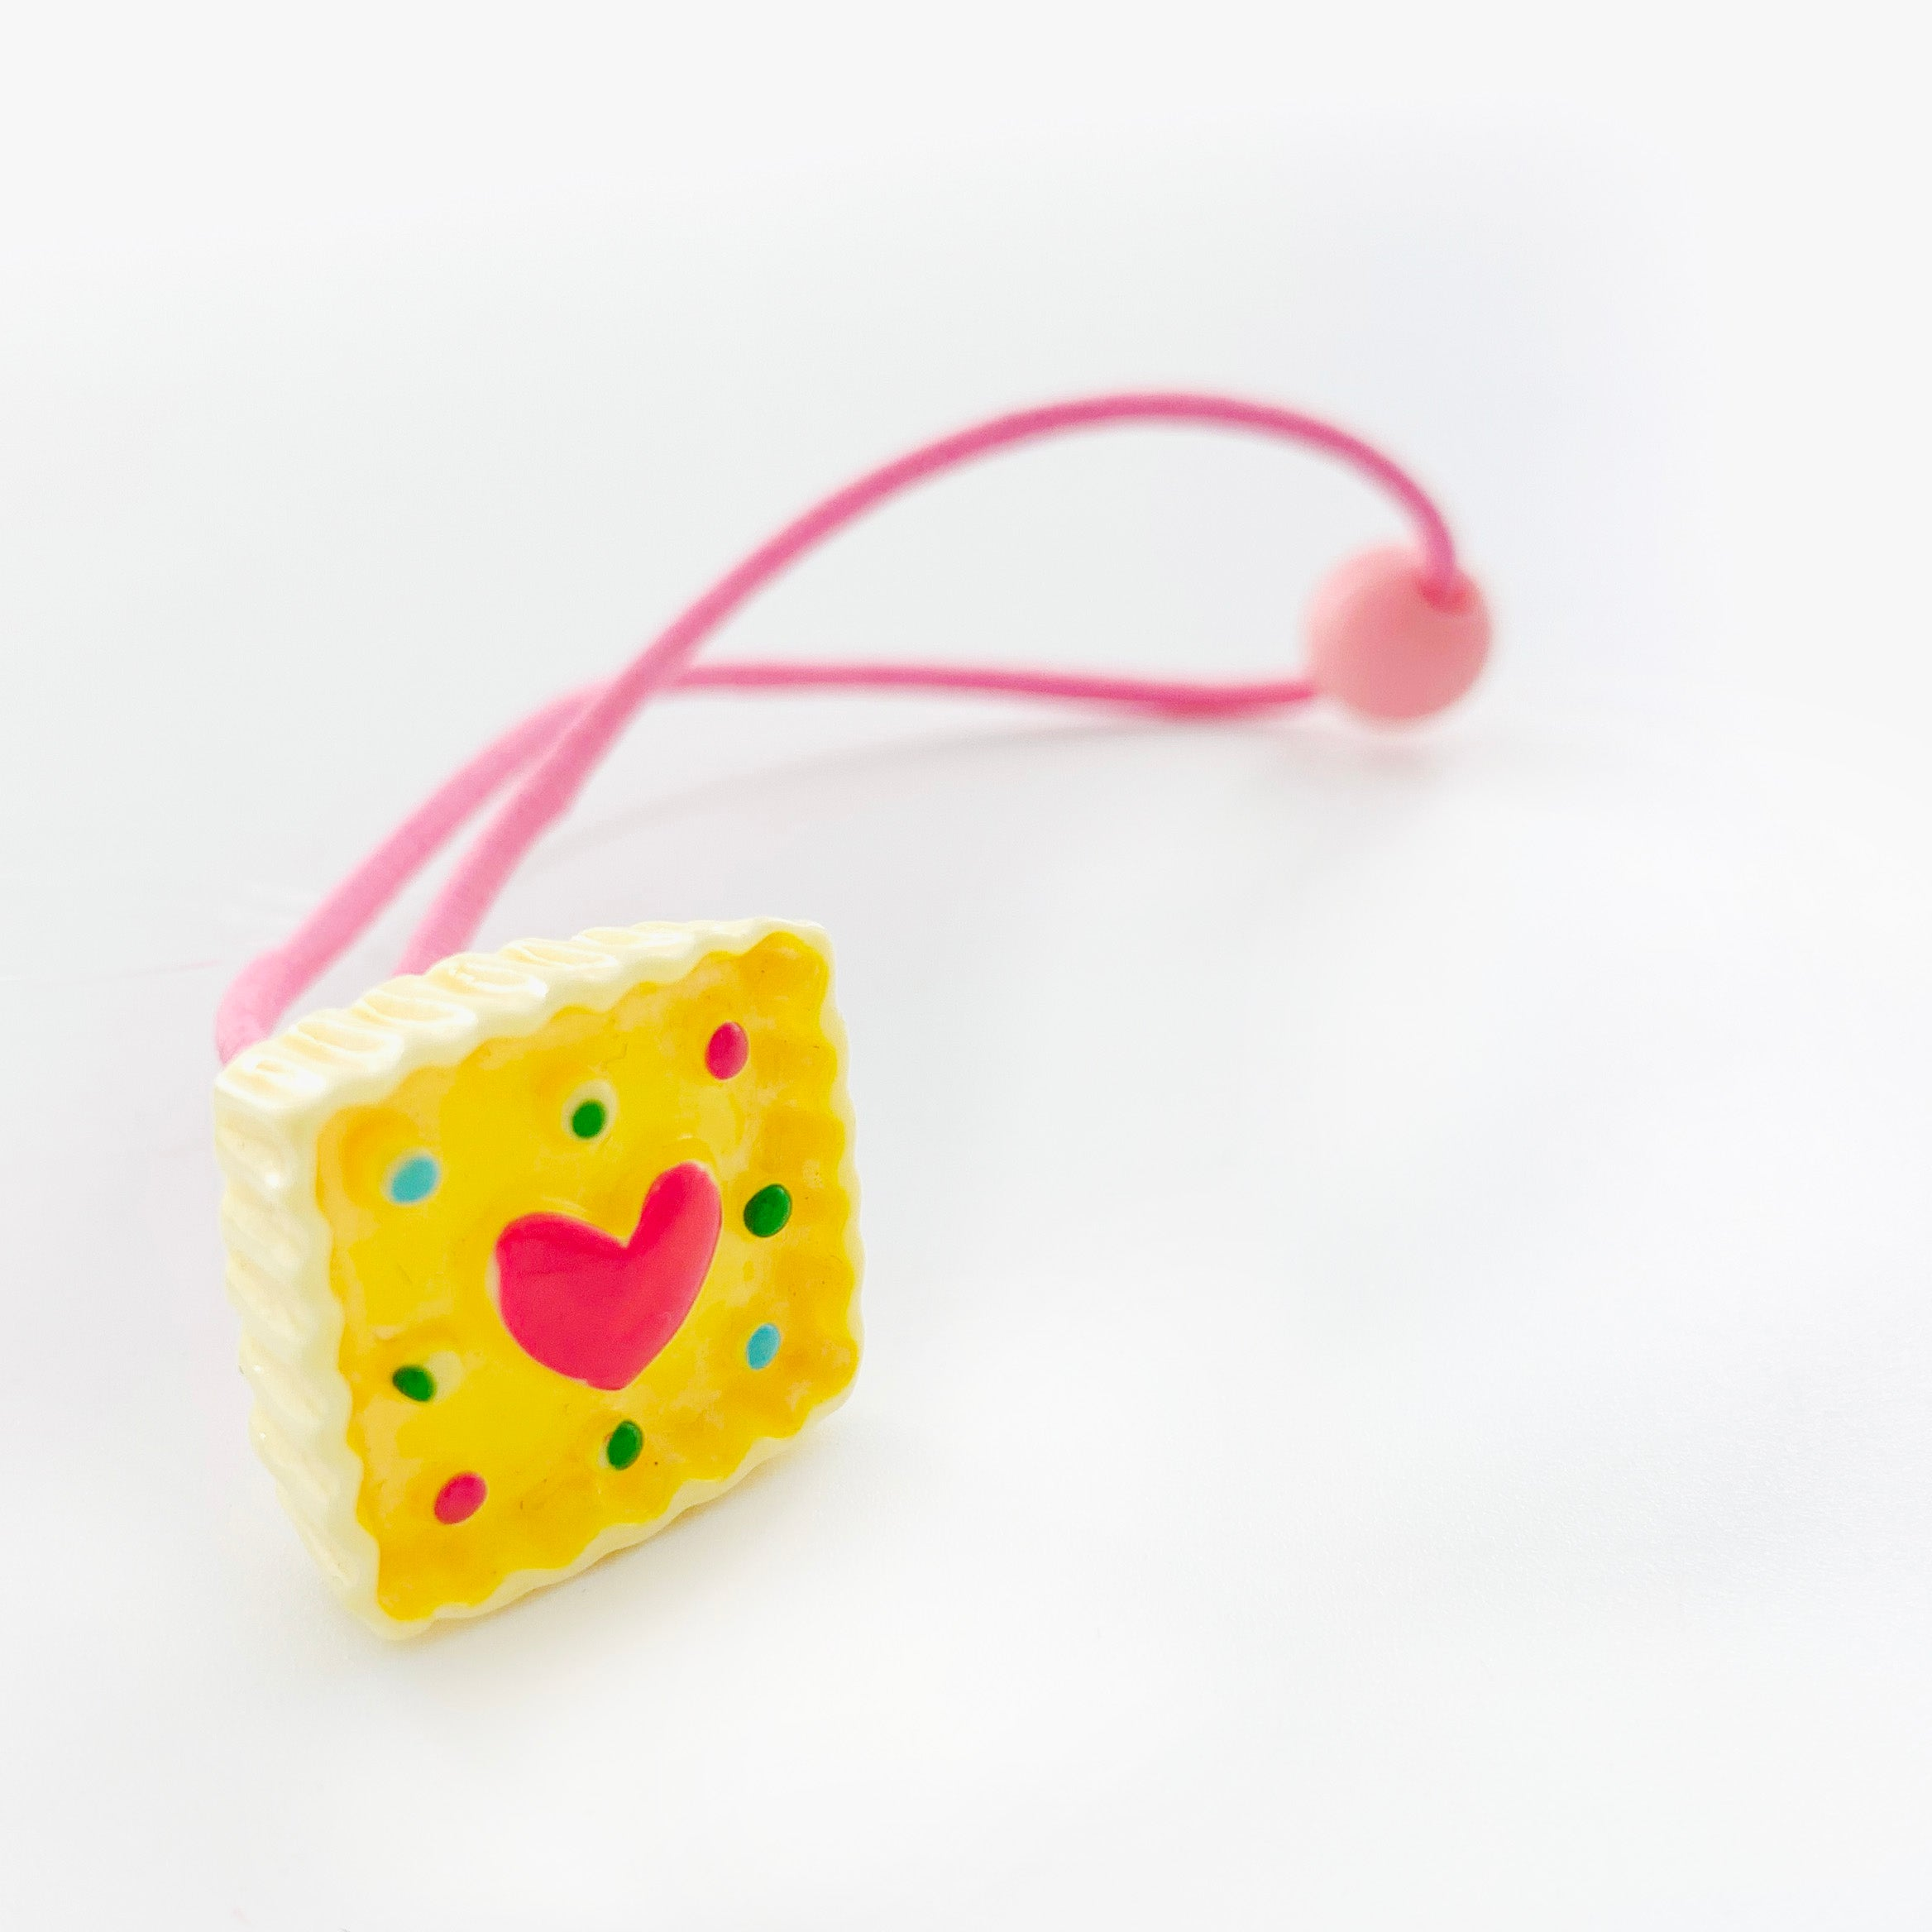 Pink rubber band with yellow cake